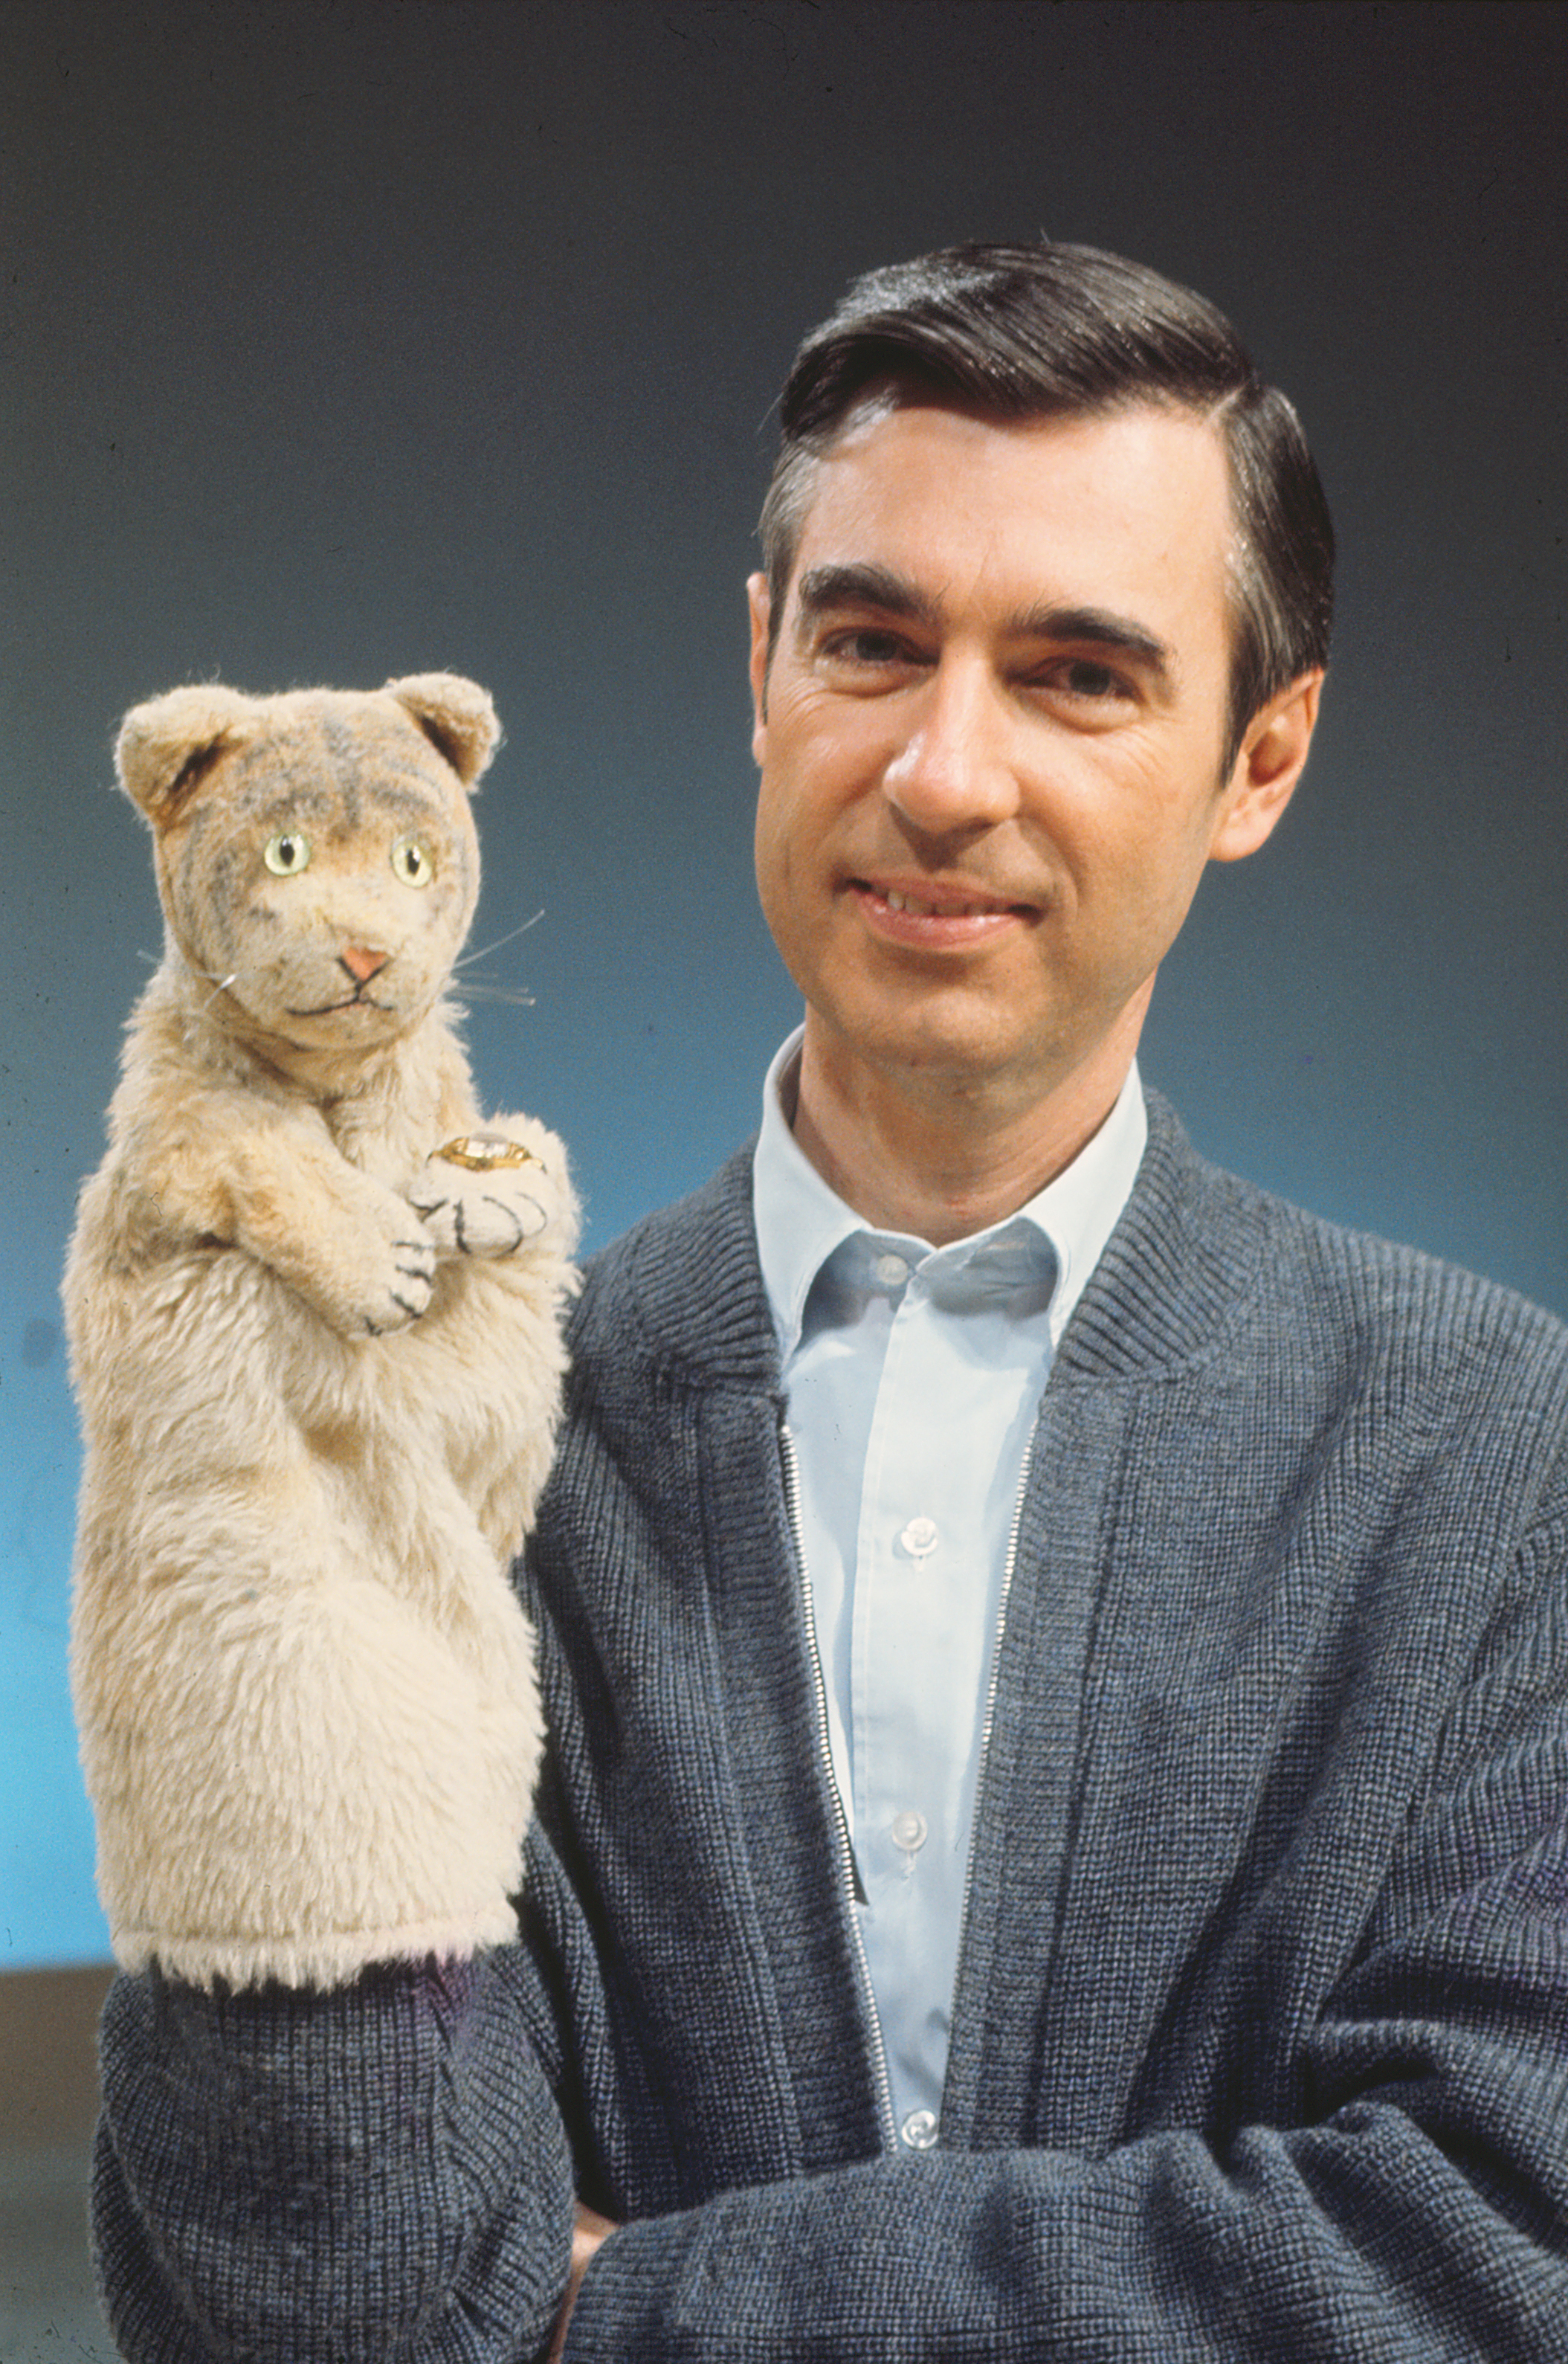 Won T You Be My Neighbor Review Documentary Paints An Admiring And Inspirational Portrait Of The Late Children S Television Host The Washington Post